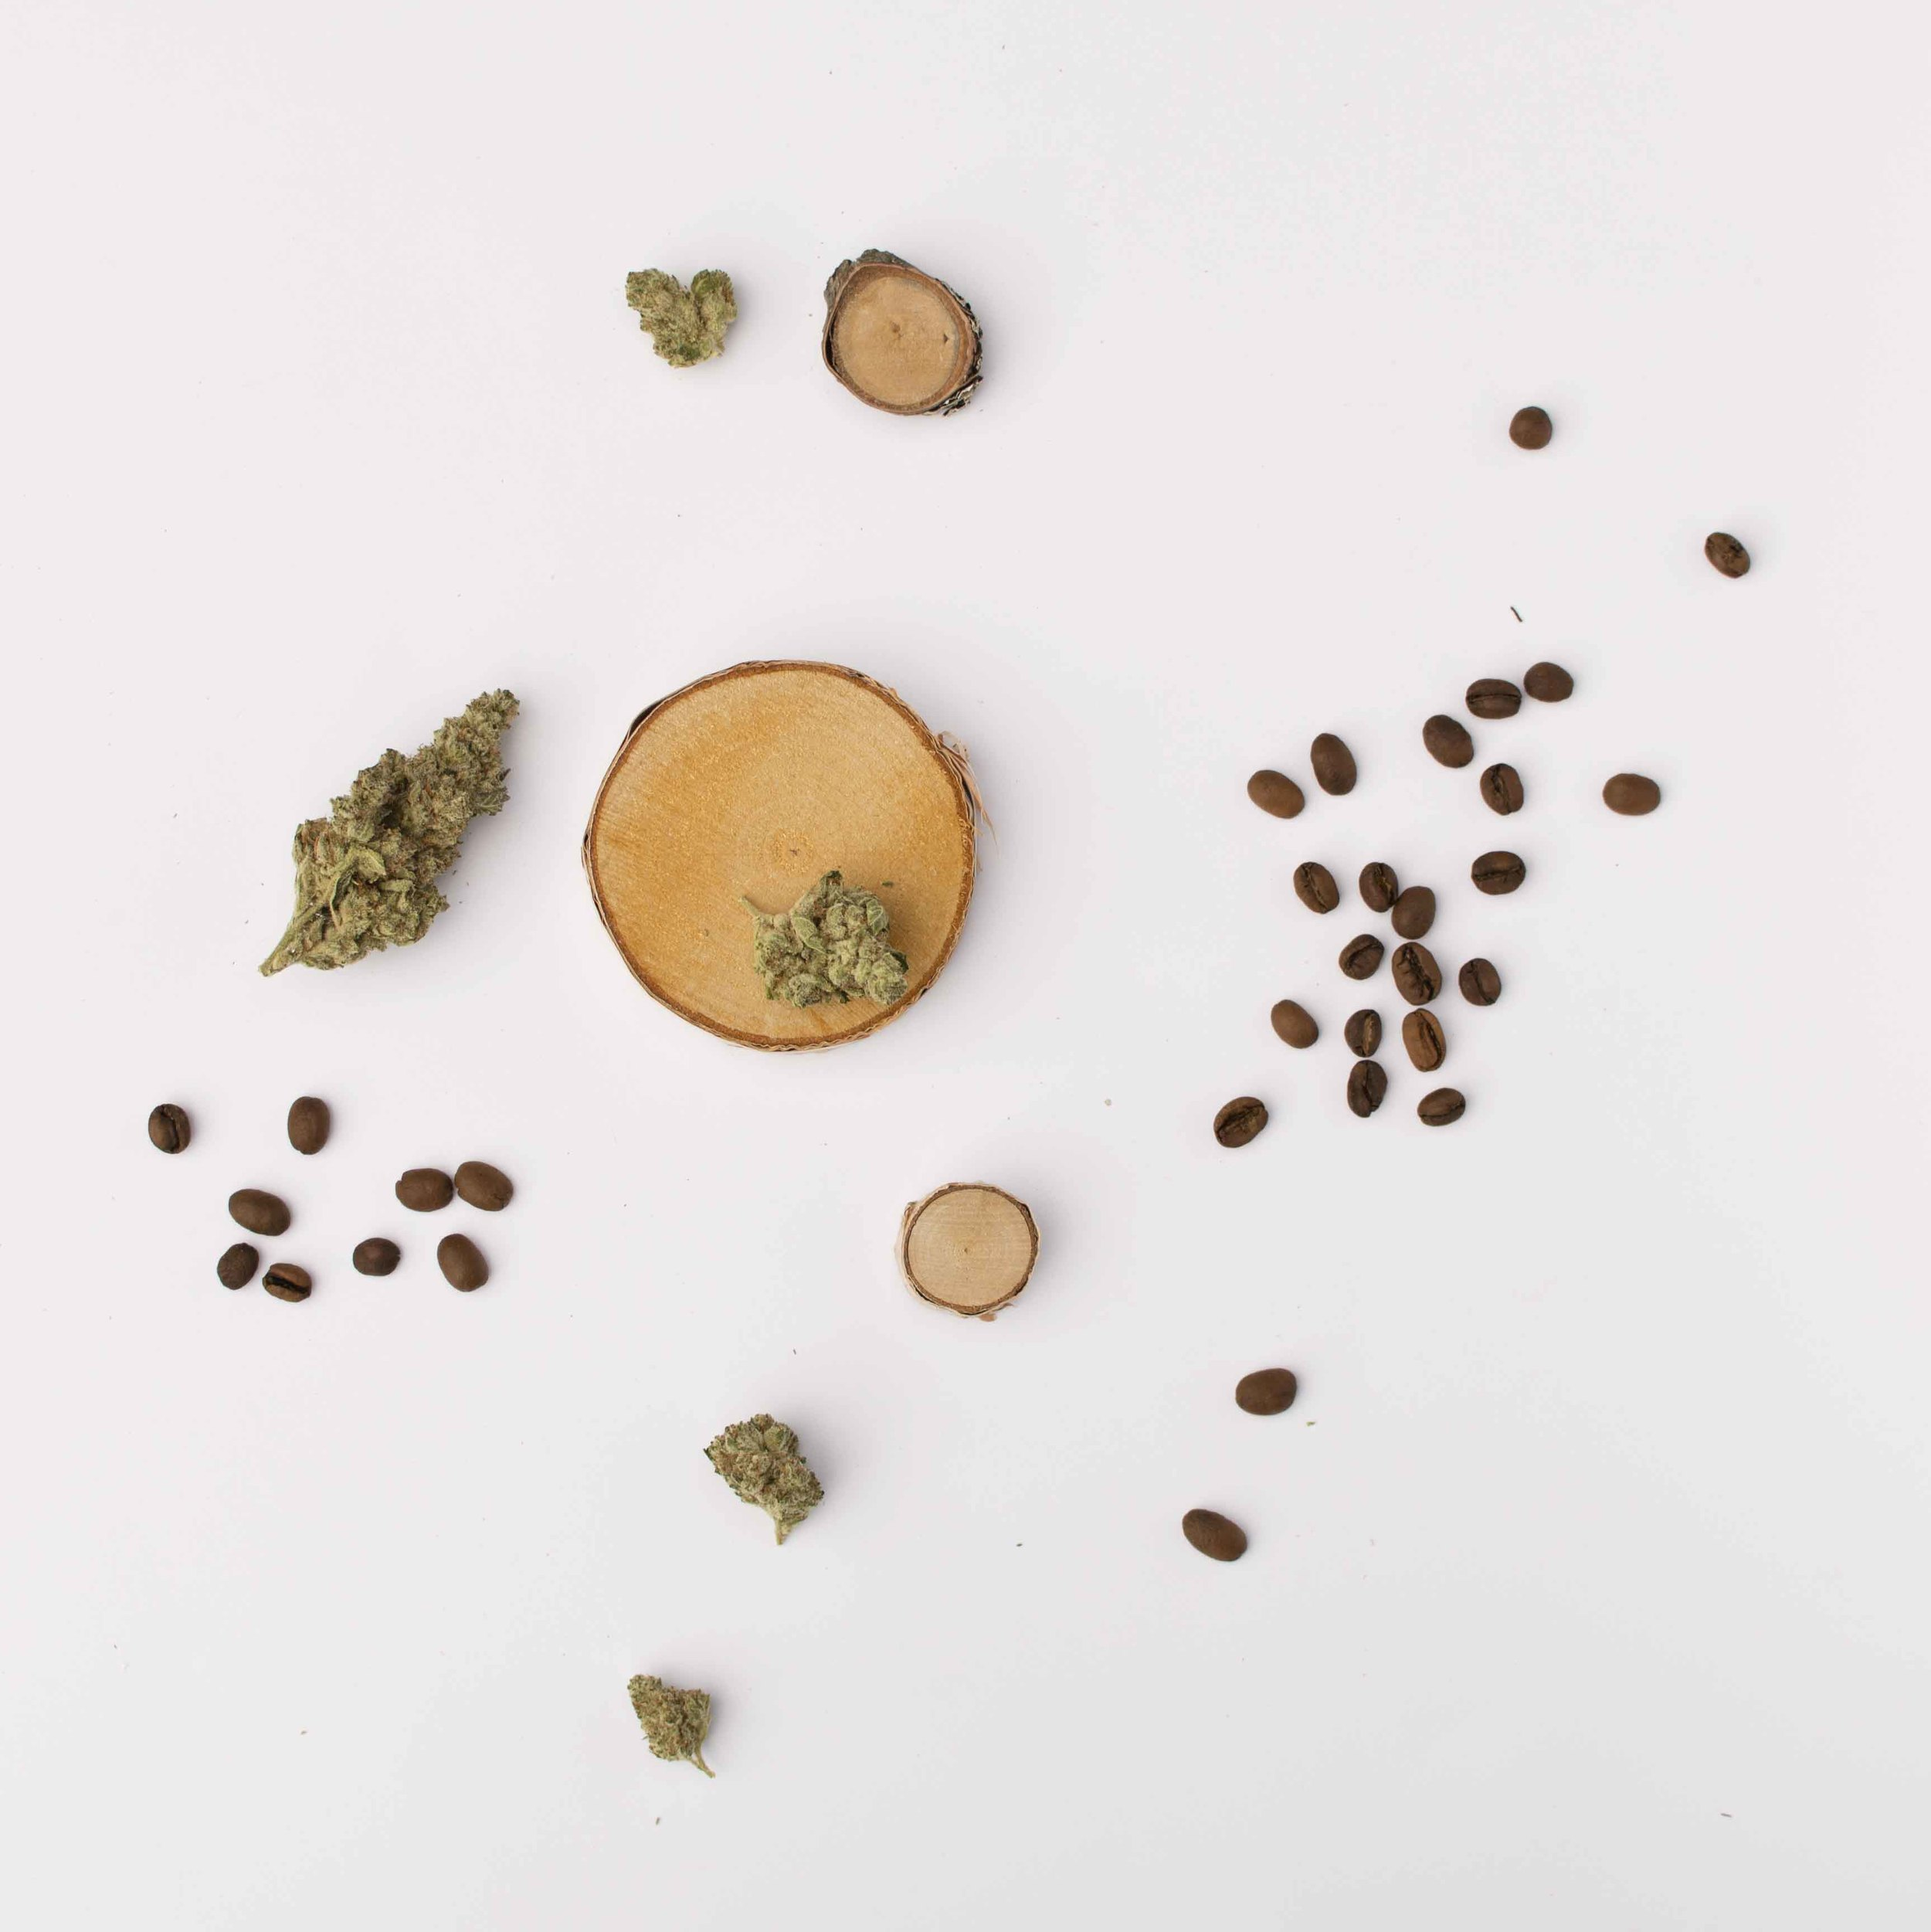 The smells of coffee beans + cannabis = love